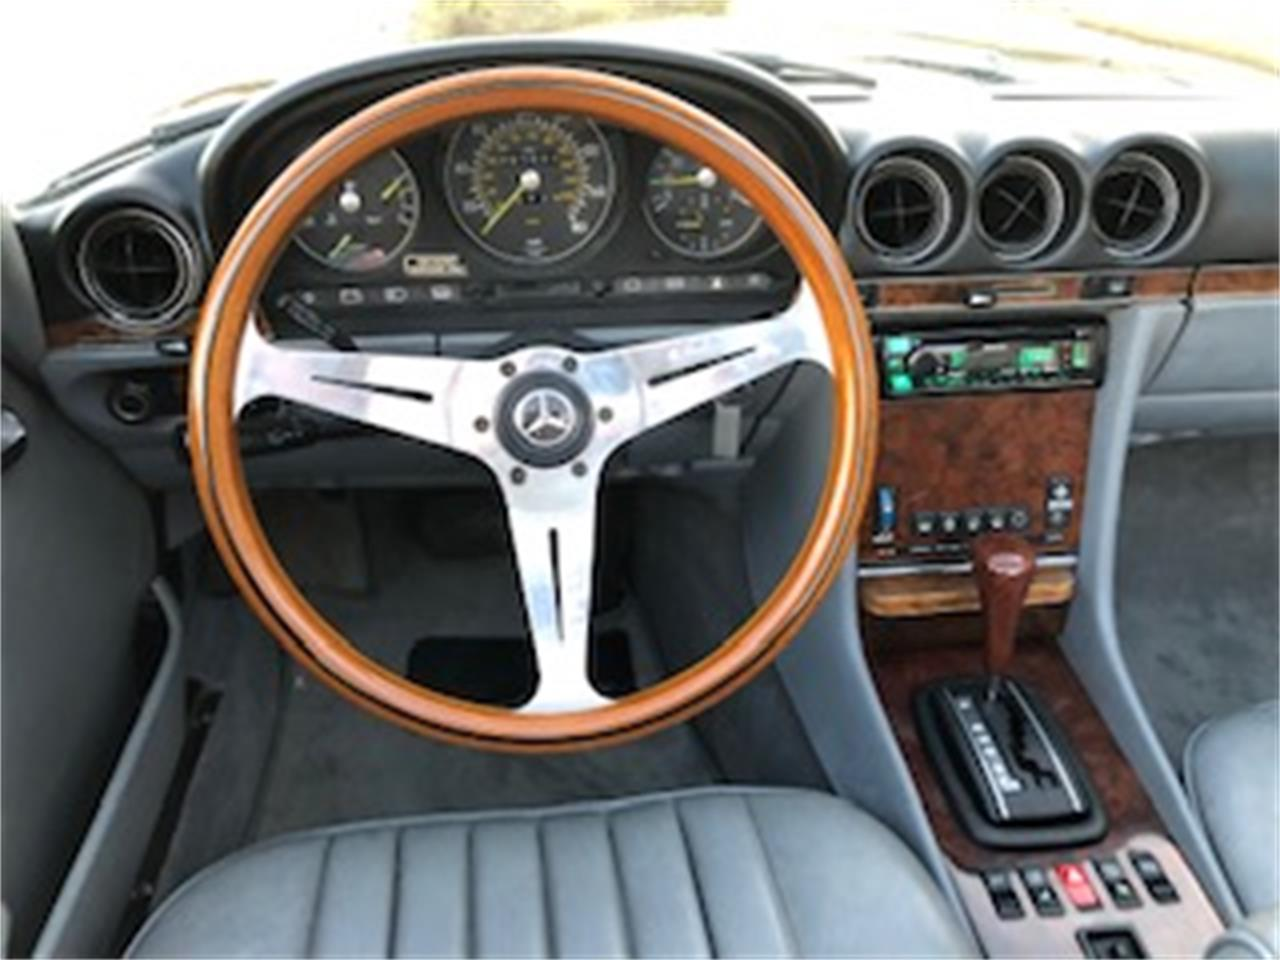 Large Picture of '85 500SL located in Texas - $25,550.00 Offered by a Private Seller - P661